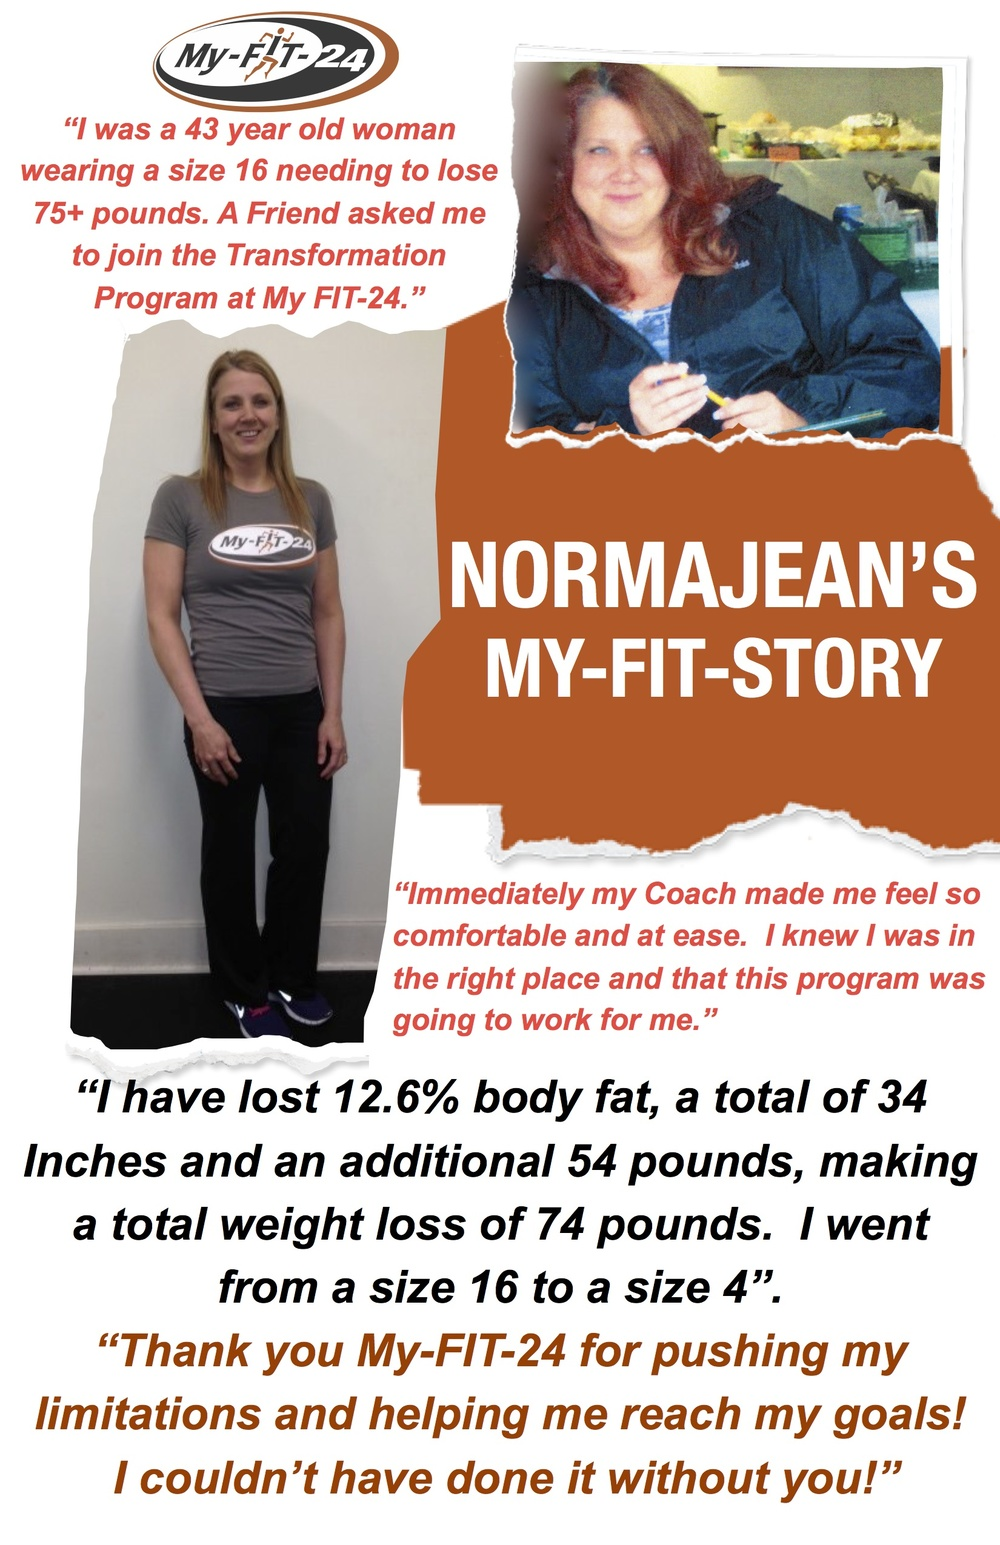 Normajean's My-FIT-Story.jpg